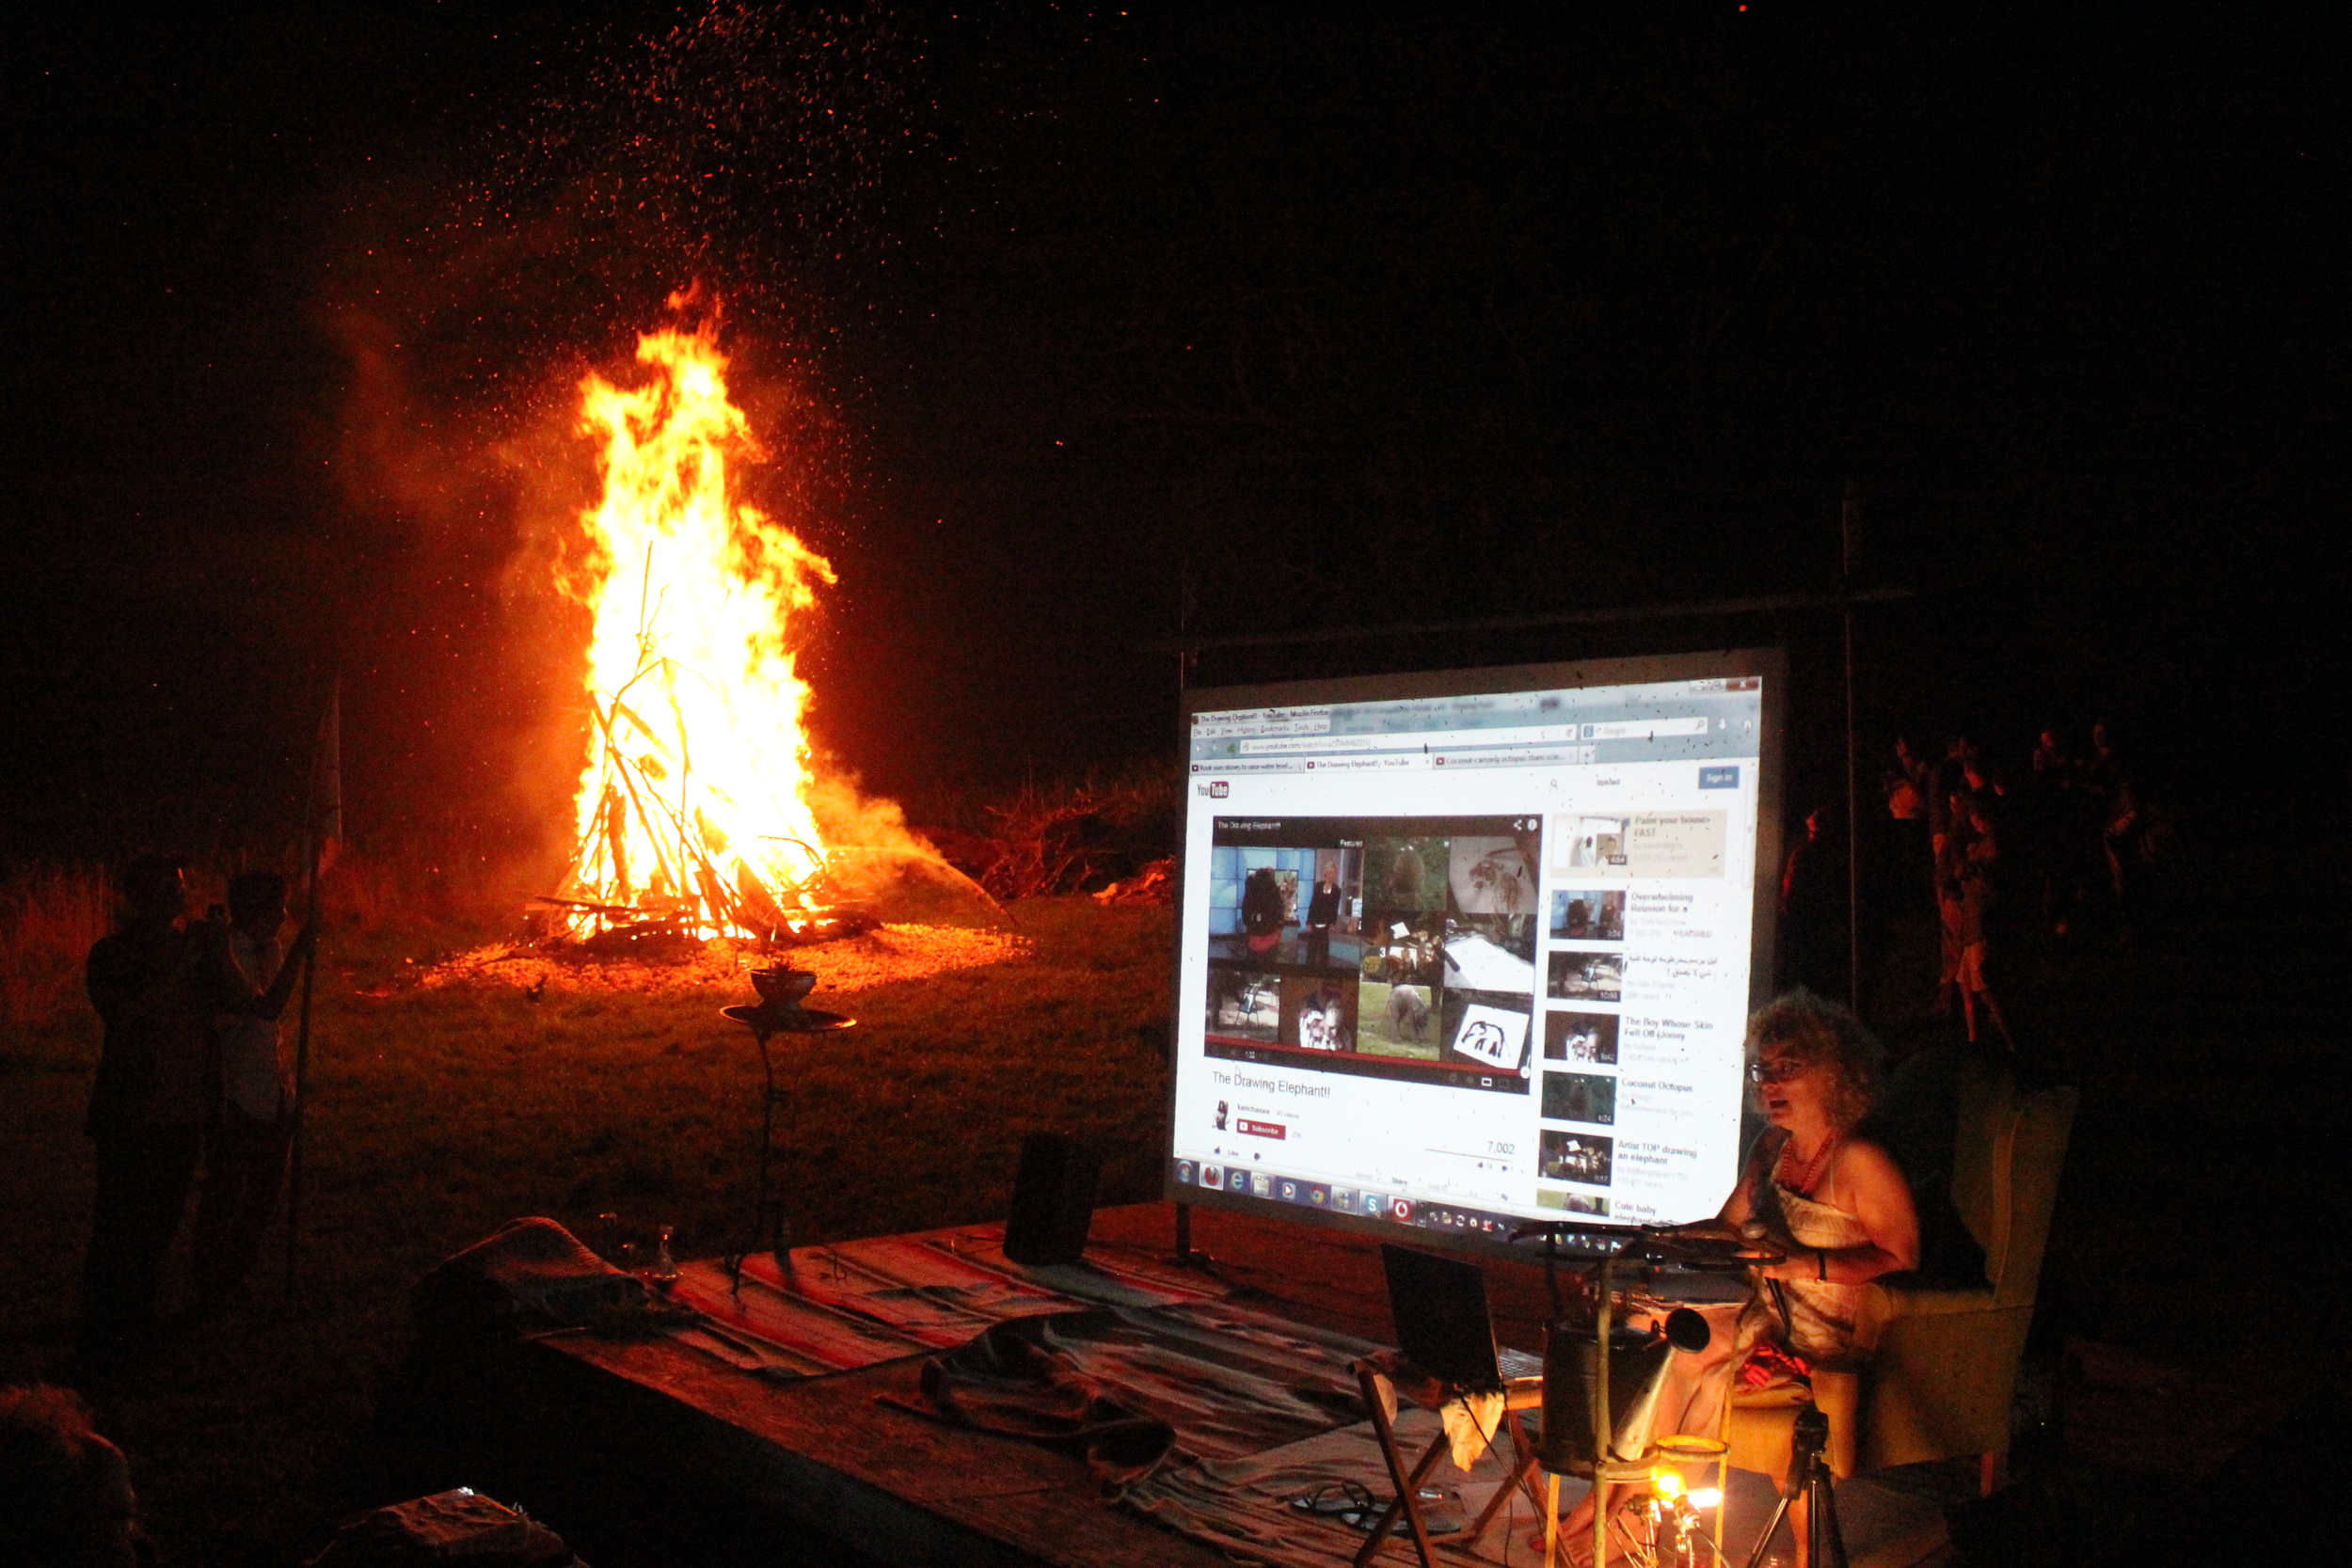 ML_finalnightfirelecture_2013.jpg